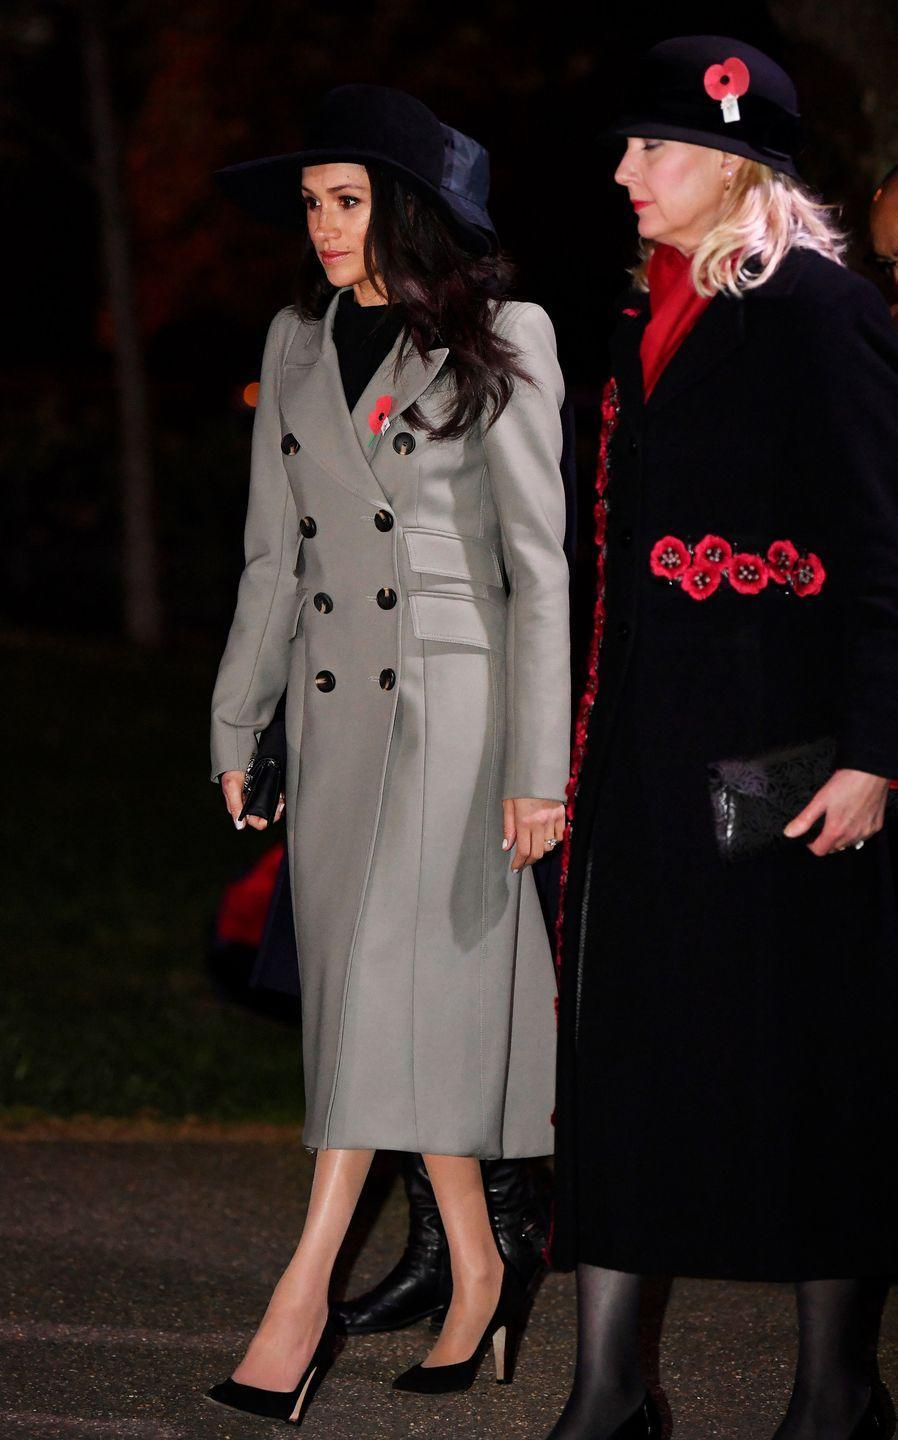 "<p>Meghan attended an <a href=""https://www.townandcountrymag.com/society/tradition/a20060050/prince-william-anzac-day-royal-baby-3-comments/"" rel=""nofollow noopener"" target=""_blank"" data-ylk=""slk:early morning memorial service in honor of Anzac Day"" class=""link rapid-noclick-resp"">early morning memorial service in honor of Anzac Day</a> wearing a coat by Smythe with Sarah Flint pumps and a Gucci mini bag. </p><p><a class=""link rapid-noclick-resp"" href=""https://go.redirectingat.com?id=74968X1596630&url=https%3A%2F%2Fwww.sarahflint.com%2Fproducts%2Fjay-pump-100-black-suede%3Fvariant%3D28249886273&sref=https%3A%2F%2Fwww.townandcountrymag.com%2Fstyle%2Ffashion-trends%2Fg3272%2Fmeghan-markle-preppy-style%2F"" rel=""nofollow noopener"" target=""_blank"" data-ylk=""slk:SHOP NOW"">SHOP NOW</a> <em>Sarah Flint Jay Pump, $395</em><br></p><p><a class=""link rapid-noclick-resp"" href=""https://go.redirectingat.com?id=74968X1596630&url=https%3A%2F%2Fwww.saksfifthavenue.com%2Fmain%2FProductDetail.jsp%3FPRODUCT%253C%253Eprd_id%3D845524447112556&sref=https%3A%2F%2Fwww.townandcountrymag.com%2Fstyle%2Ffashion-trends%2Fg3272%2Fmeghan-markle-preppy-style%2F"" rel=""nofollow noopener"" target=""_blank"" data-ylk=""slk:SHOP NOW"">SHOP NOW</a> <em>Gucci Dionysus Mini Shoulder Bag, $830</em></p>"